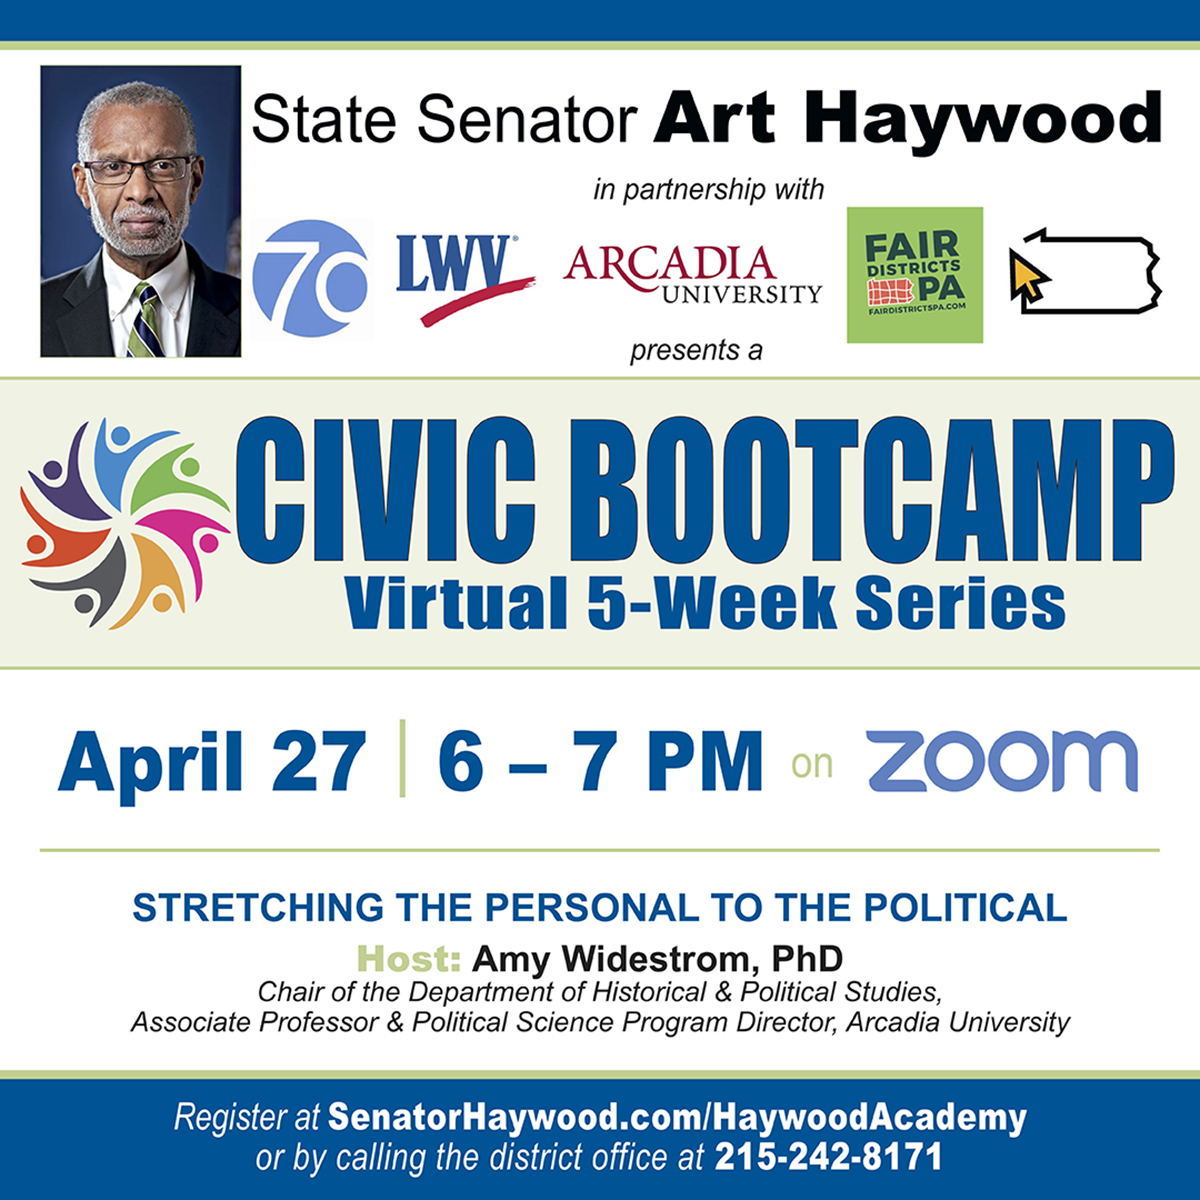 Civic Bootcamp - Stretching the Personal to the Political